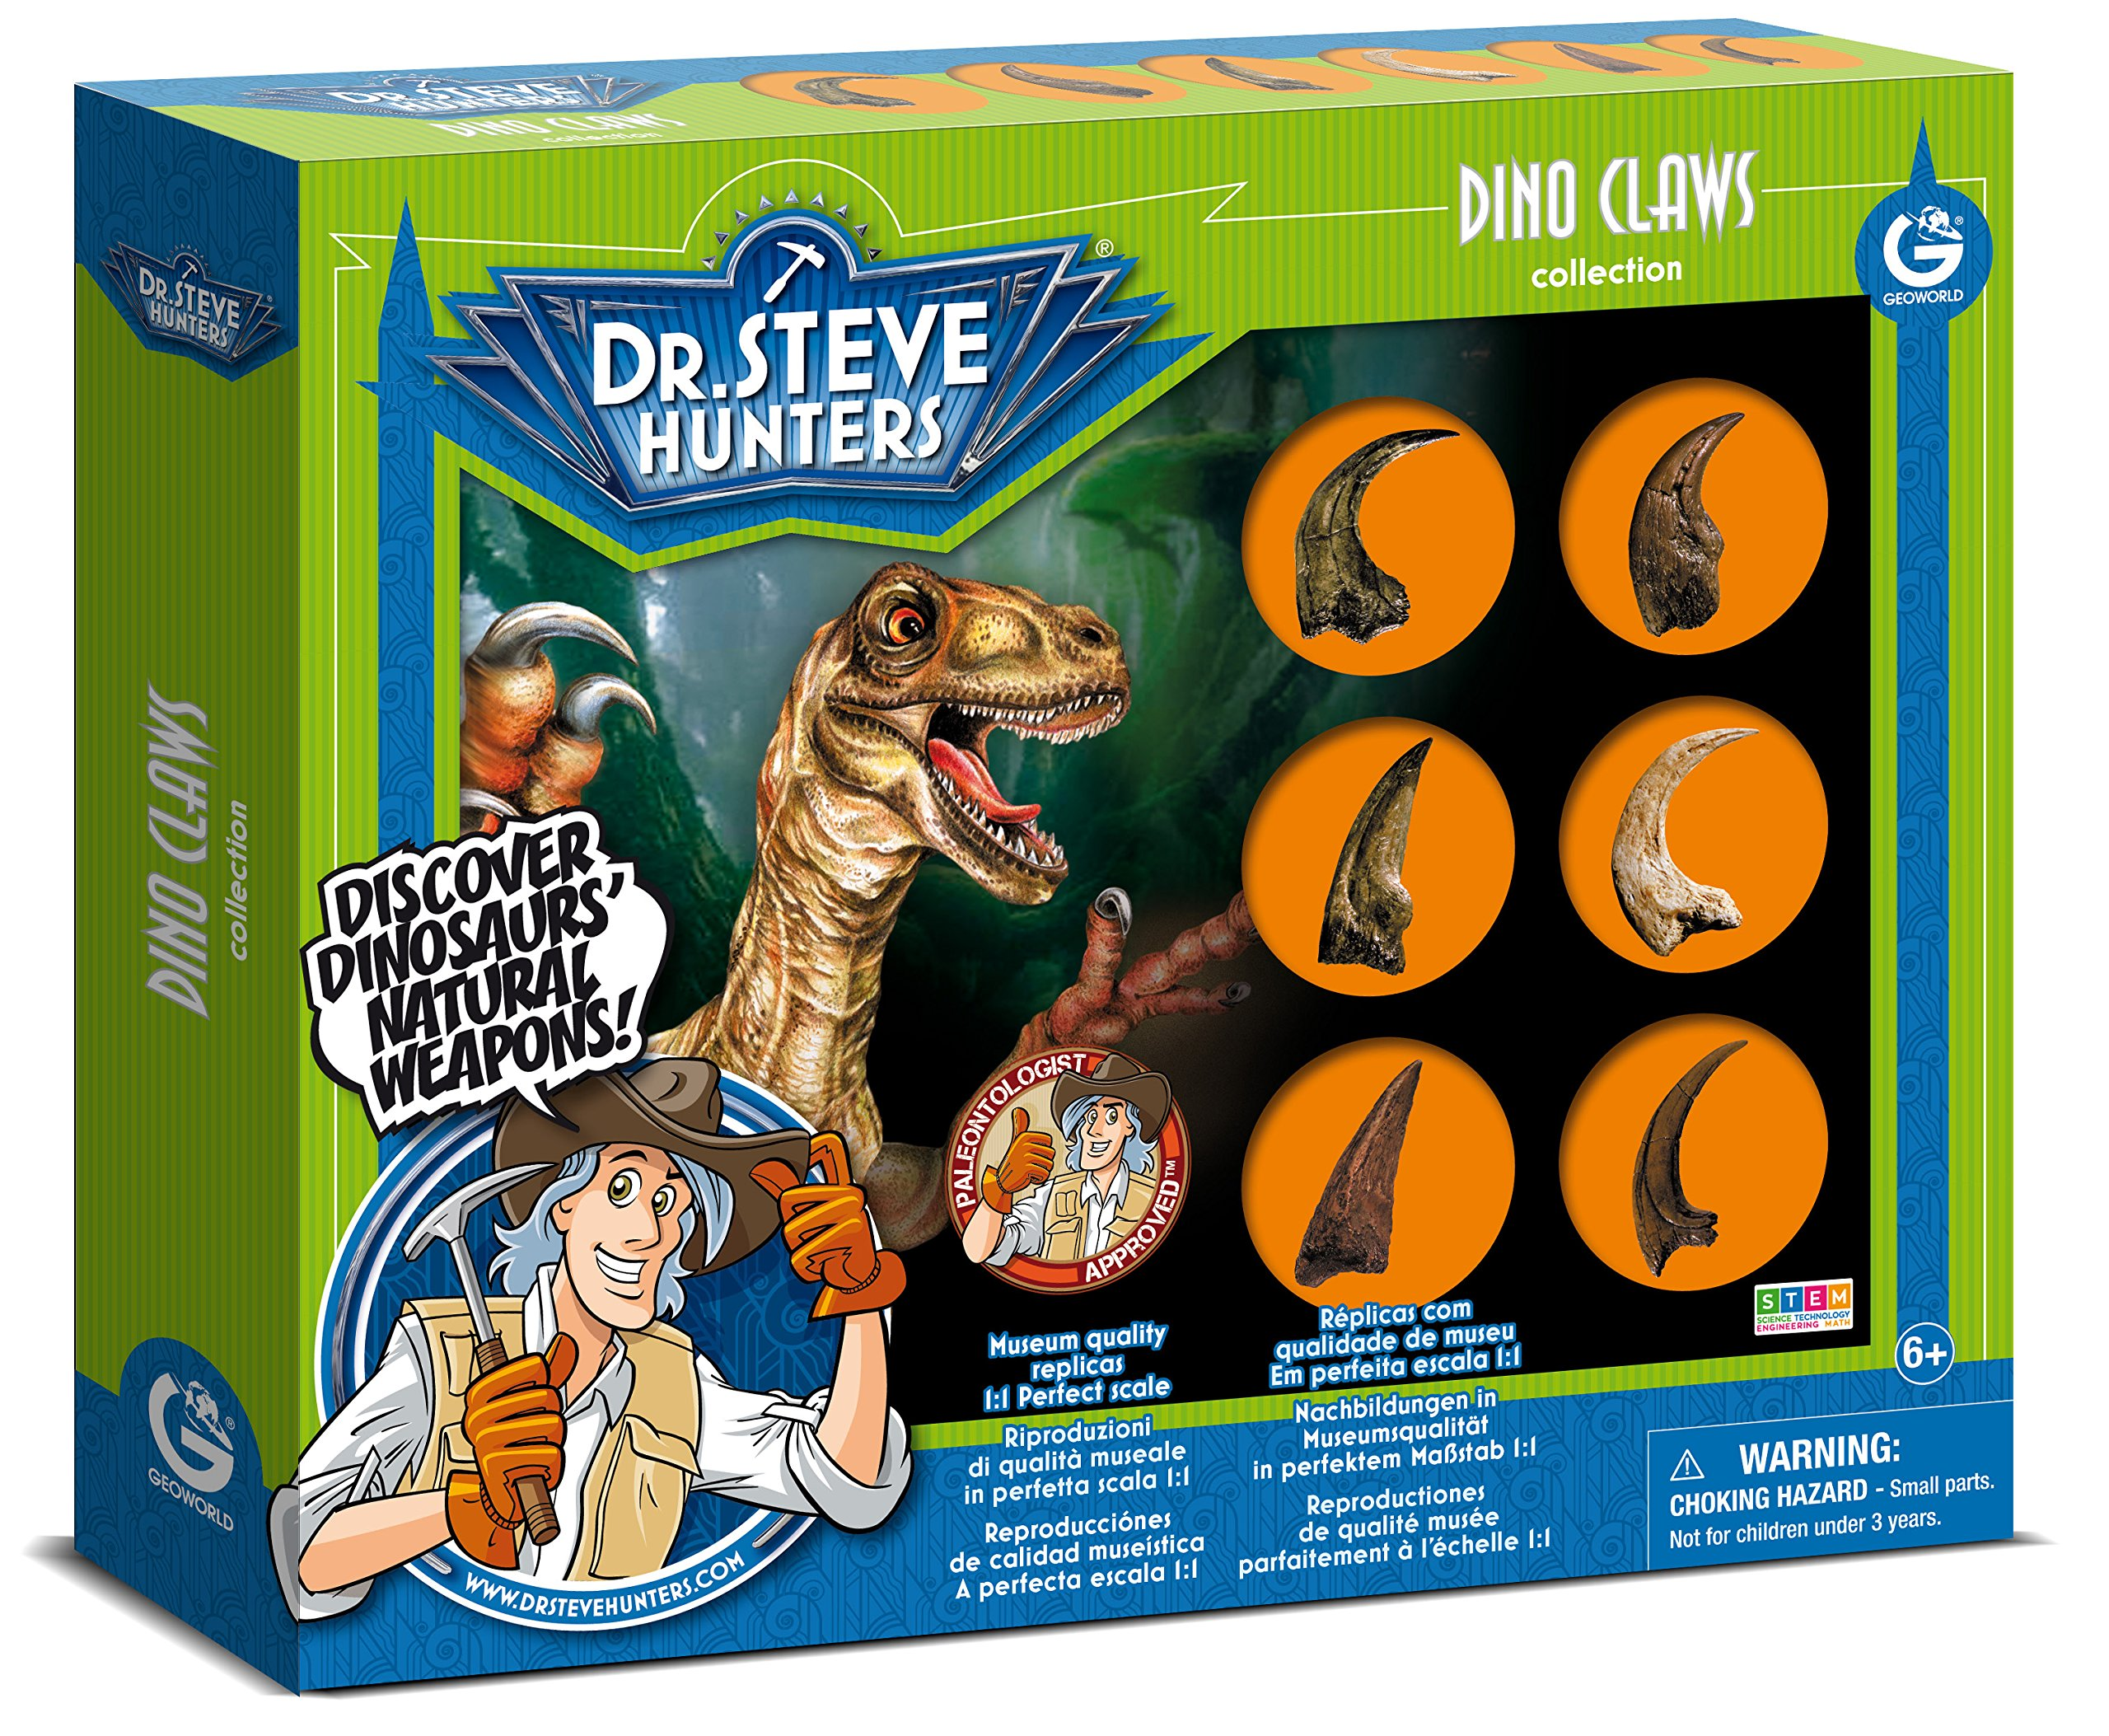 Uncle Milton Dr. Steve Hunters - Dino Claws Replica Collection 6 Piece Scientific Educational Toy